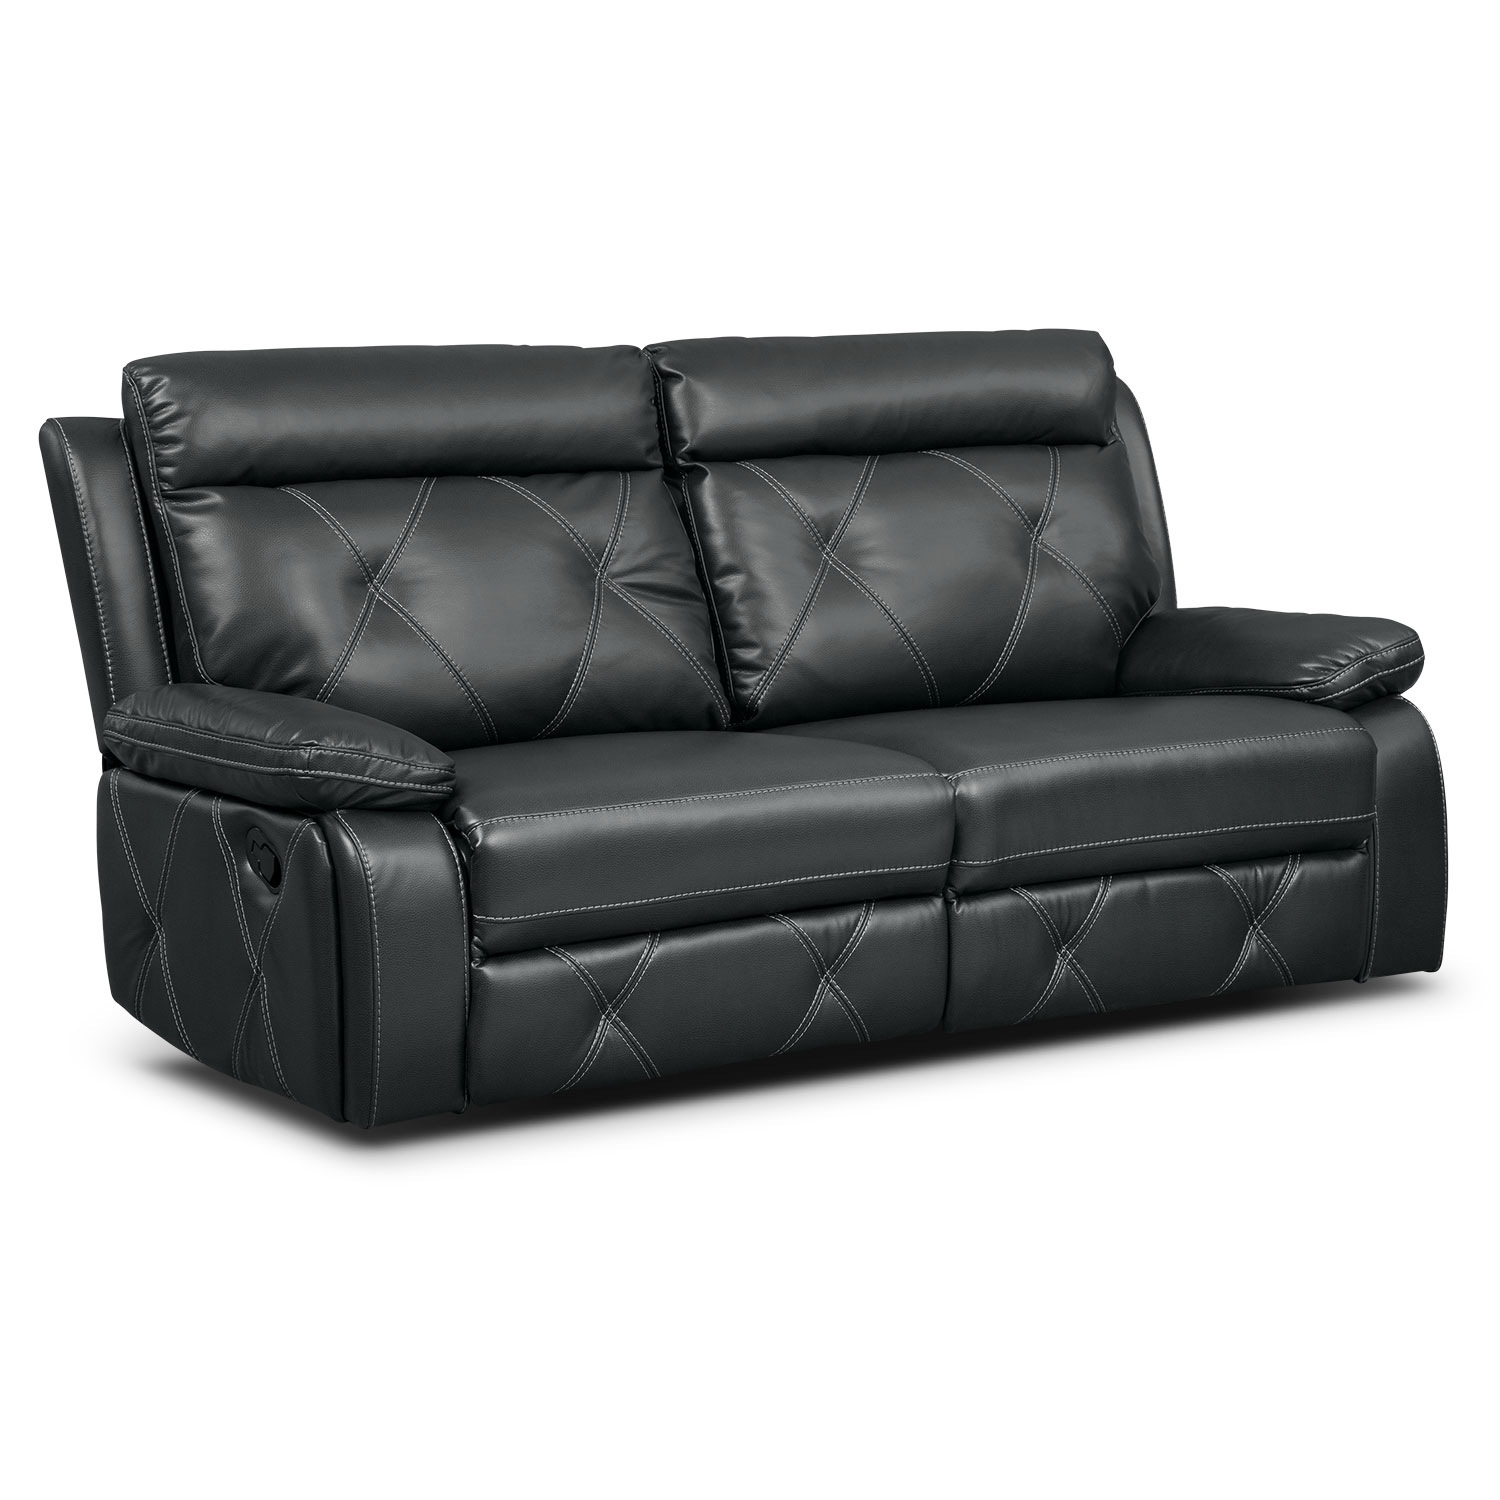 Living Room Furniture - Dante 2-Piece Reclining Sofa - Charcoal